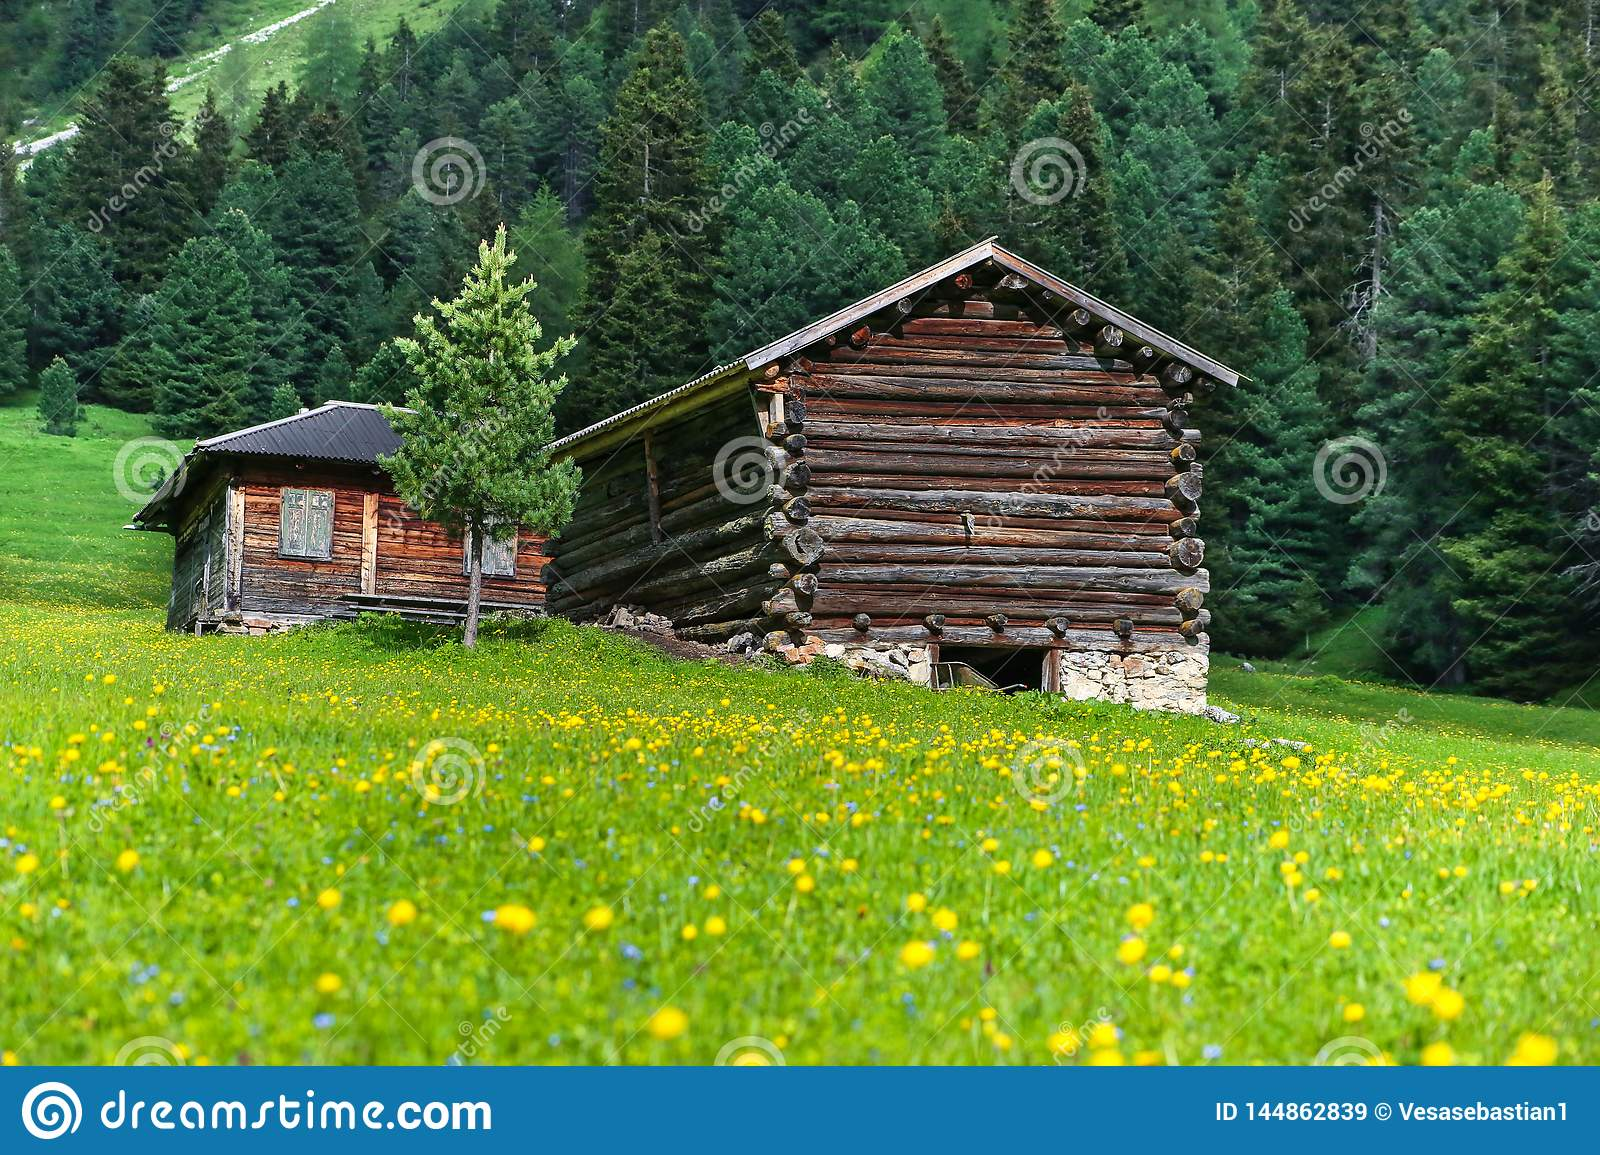 Wooden cabins and a meadow with yellow globe flowers in Dolomites